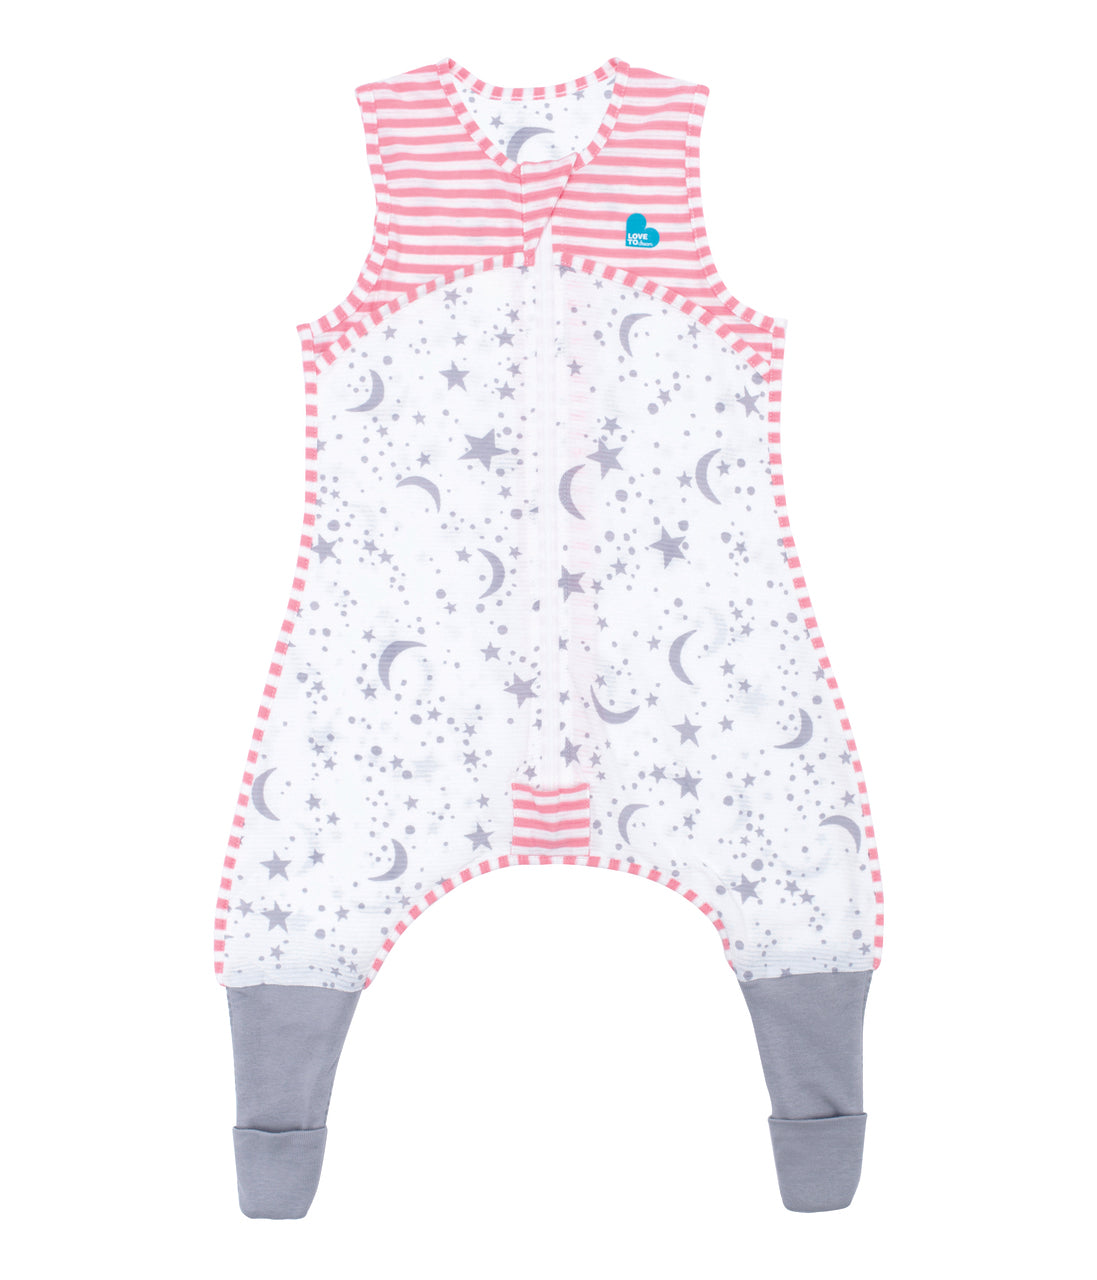 SLEEP SUIT™ 0.2 TOG Pink (Clearance - 36 months)